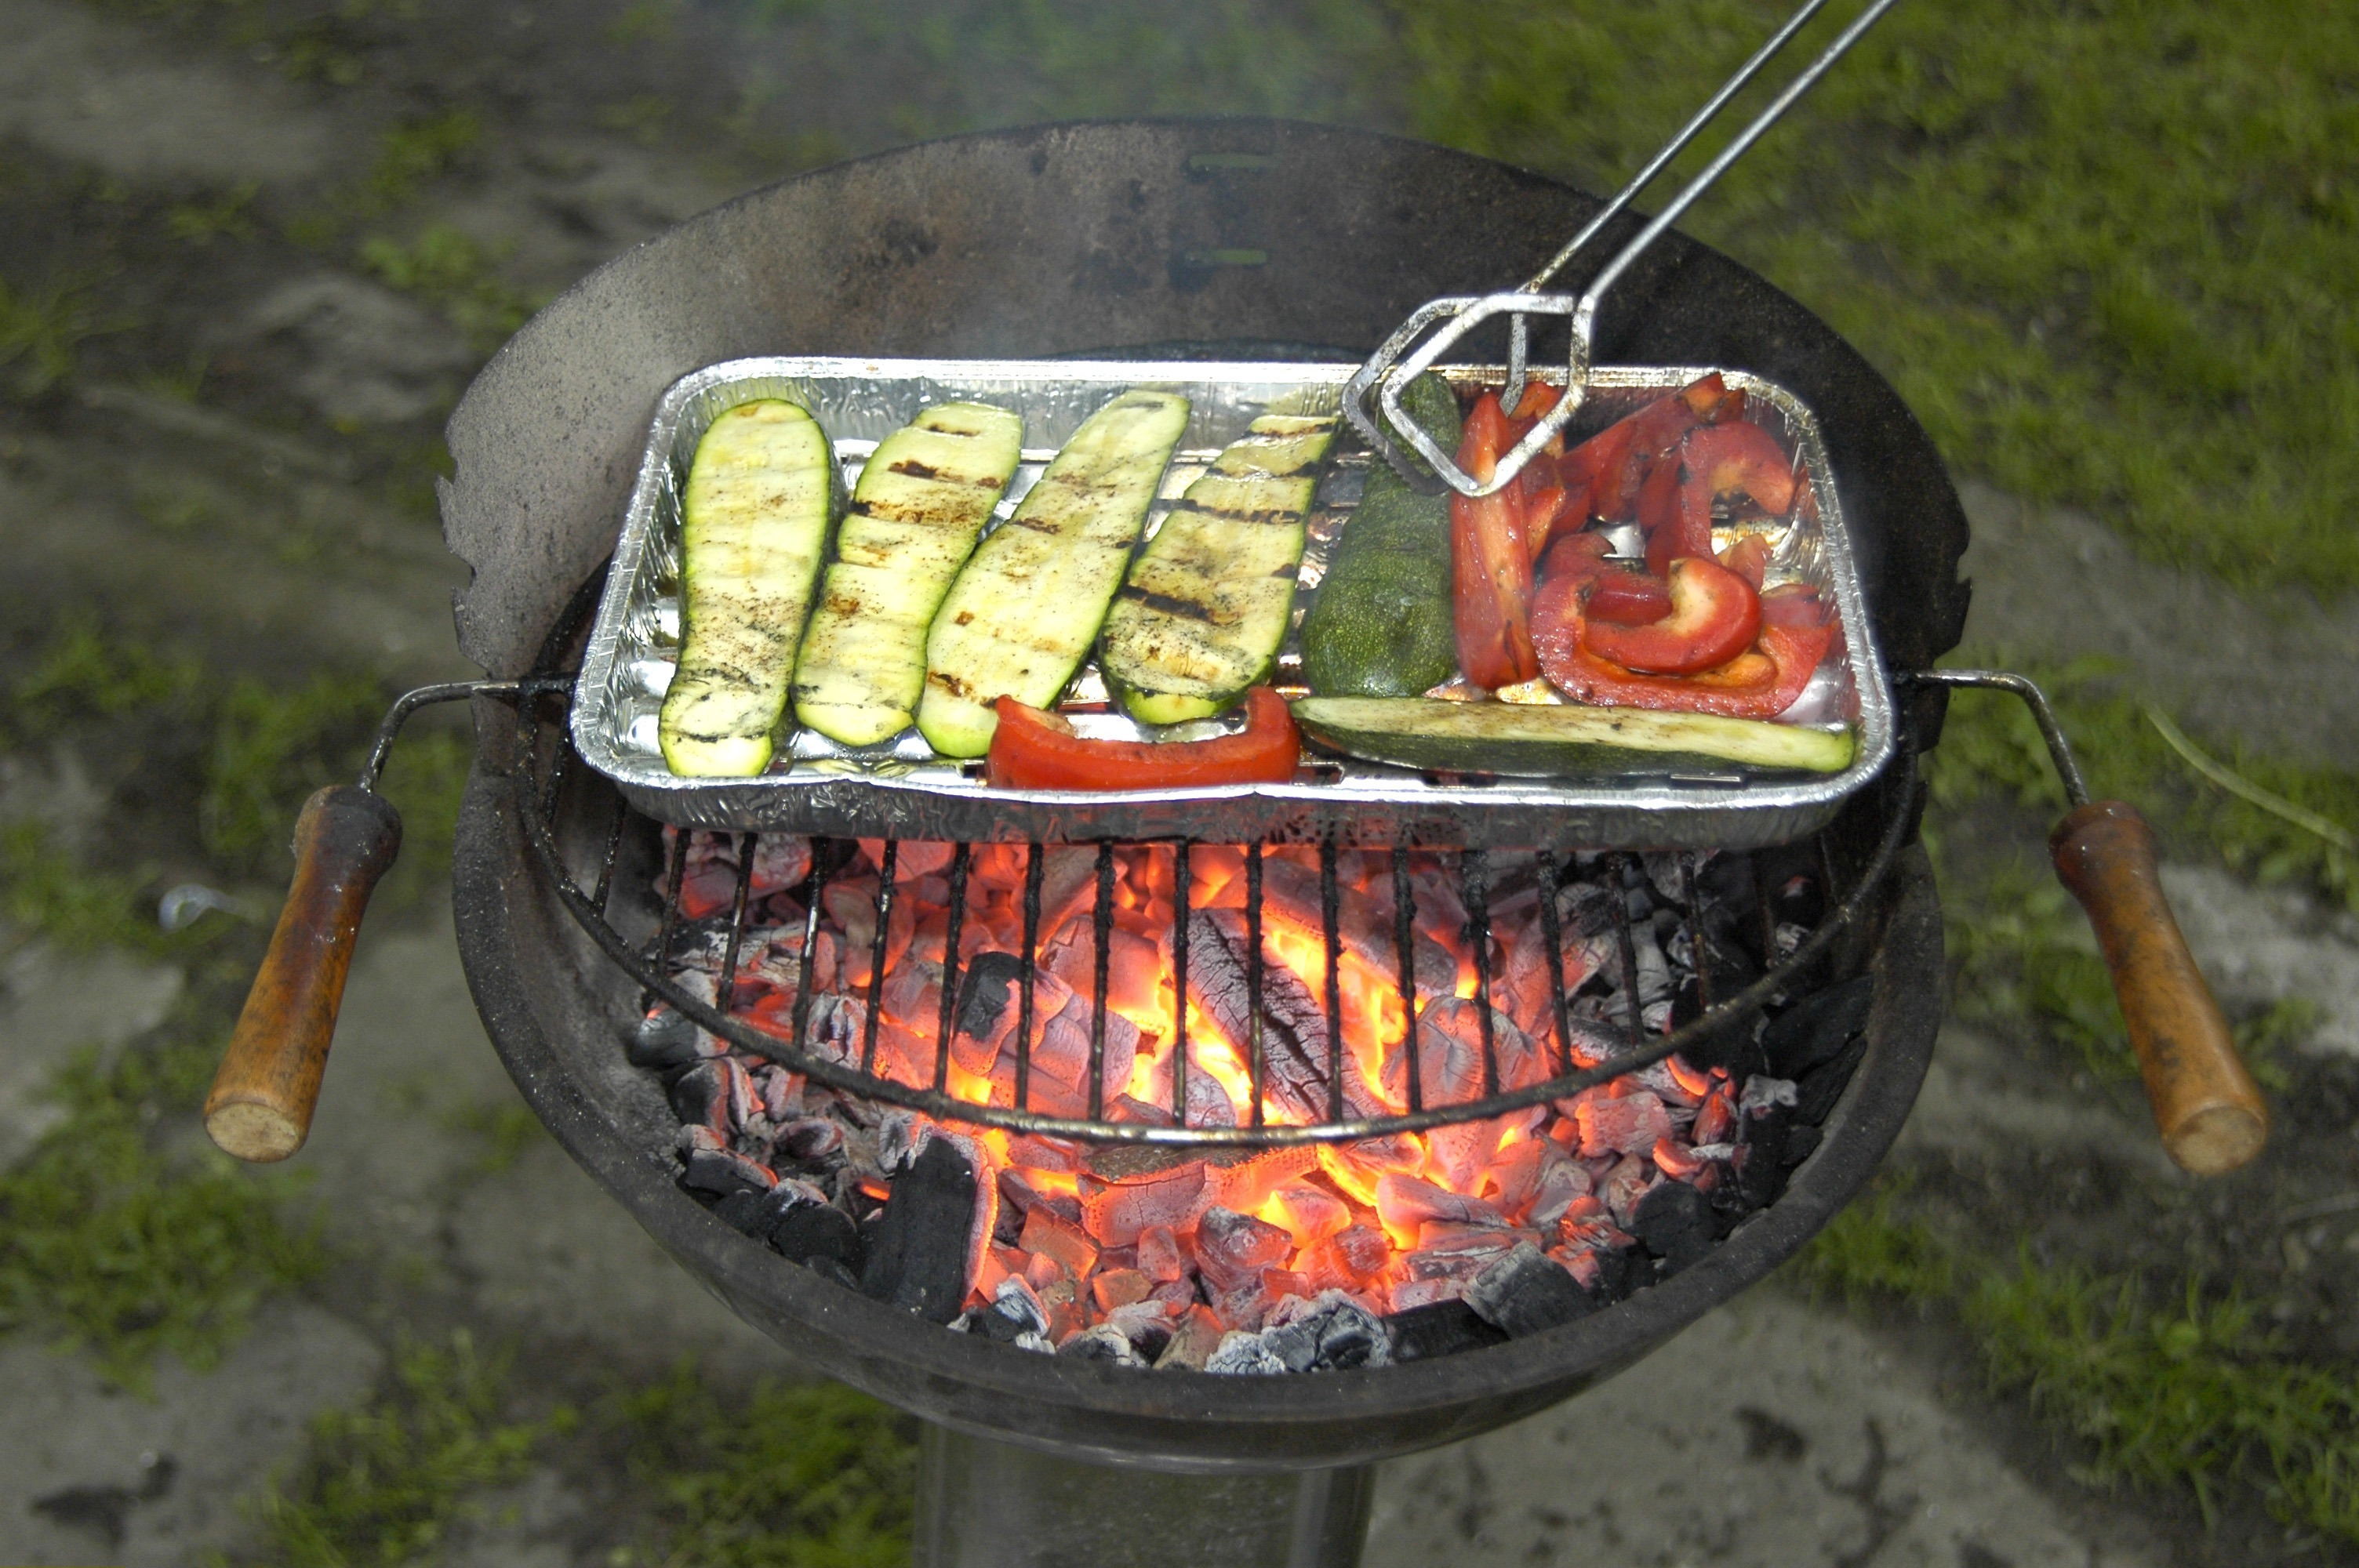 A tray full of vegetables roasts on an outdoor barbecue.